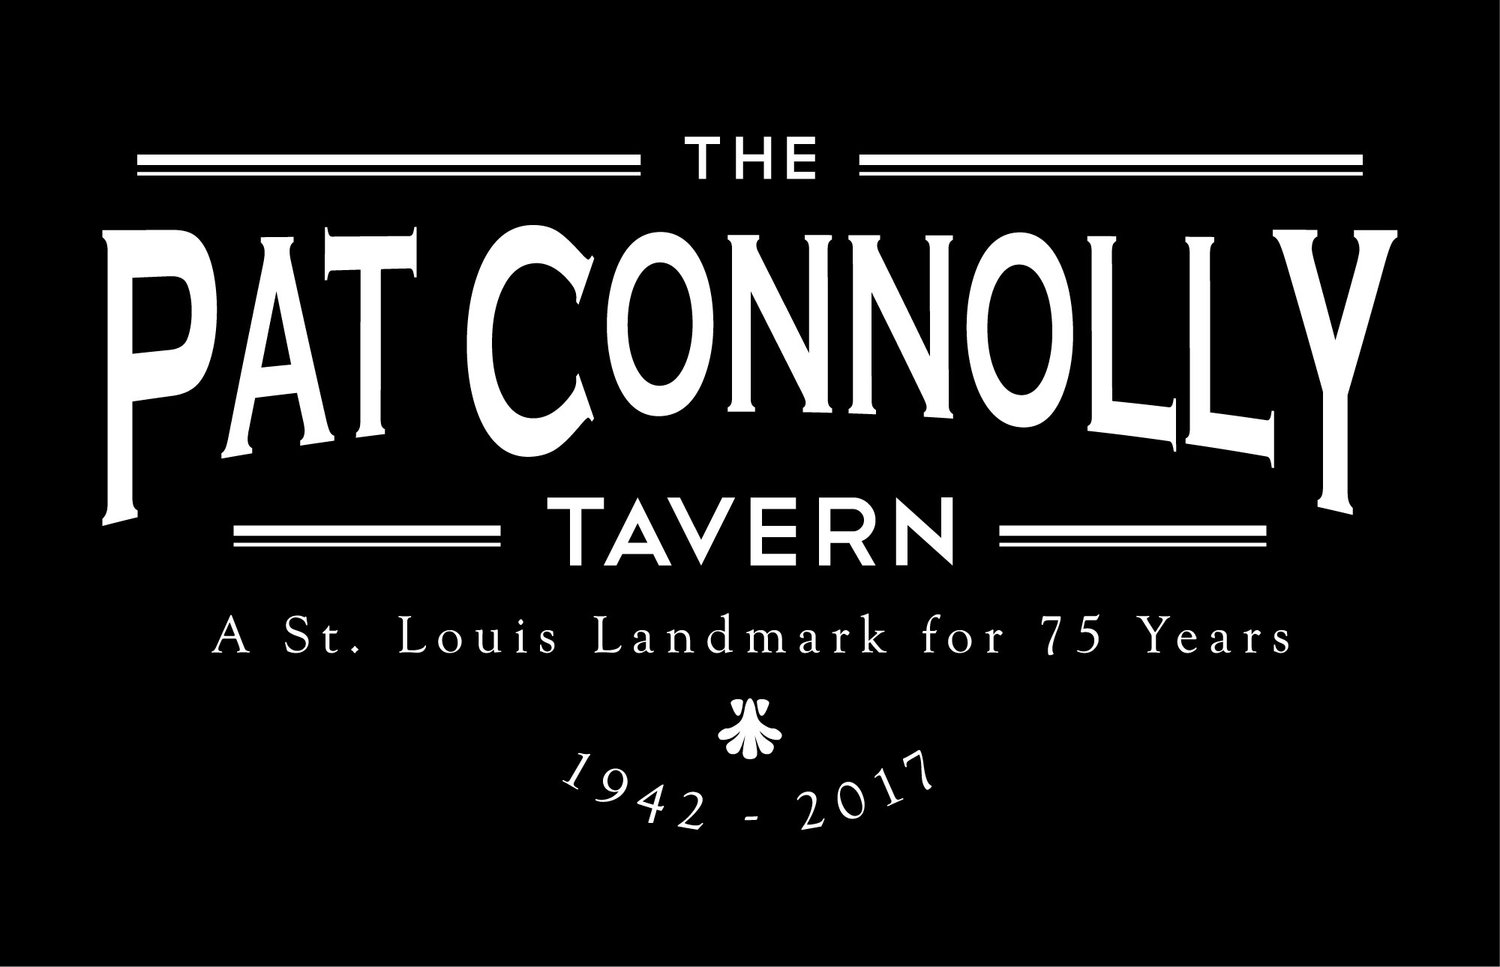 The Pat Connolly Tavern